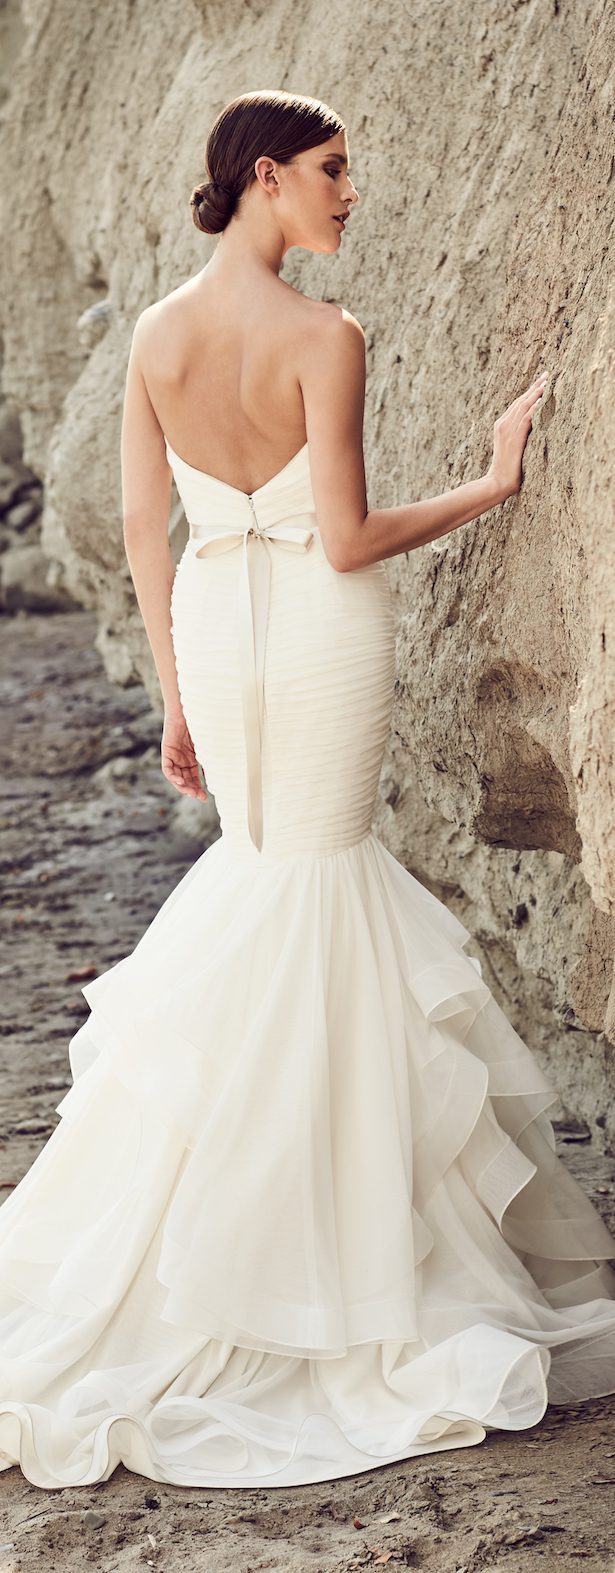 Wedding Dress by Mikaella Bridal Spring 2017 Collection